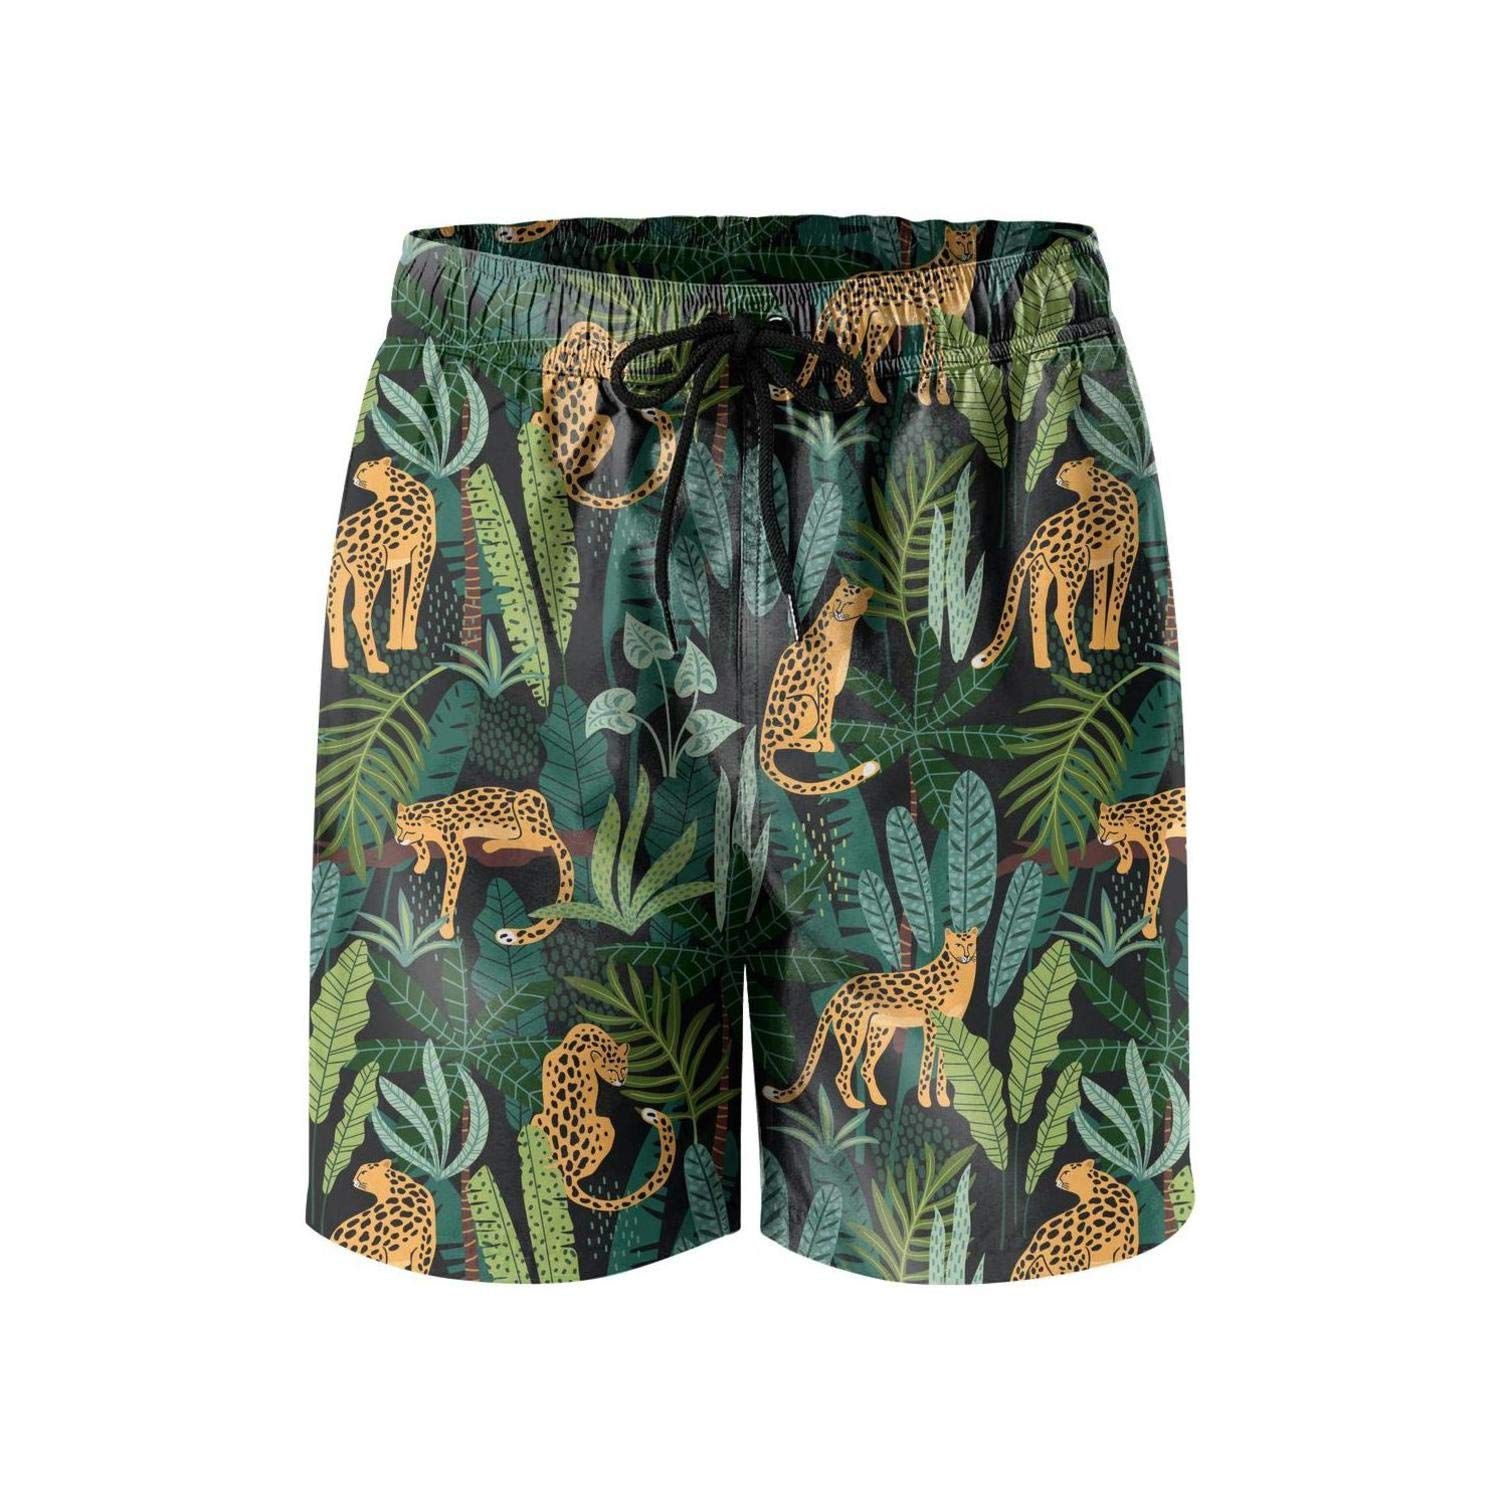 f4679171f6a2 Men's Swim Trunks Roses Leopard Skin Jaguar Print Quick Dry Bathing Suits  Mesh Lining Beach Board Shorts | Amazon.com